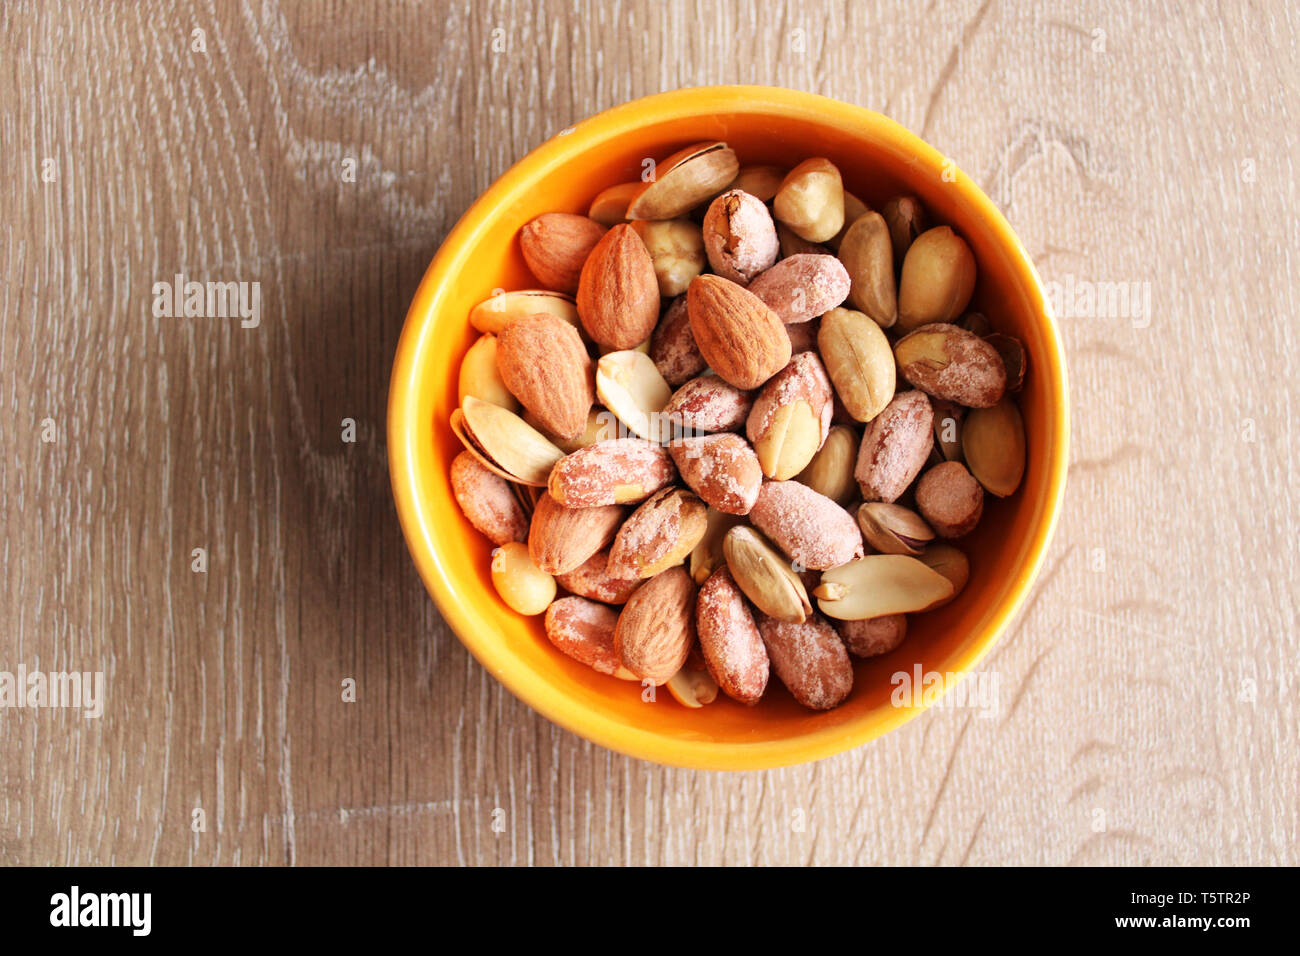 Mixed nuts top view - Stock Image